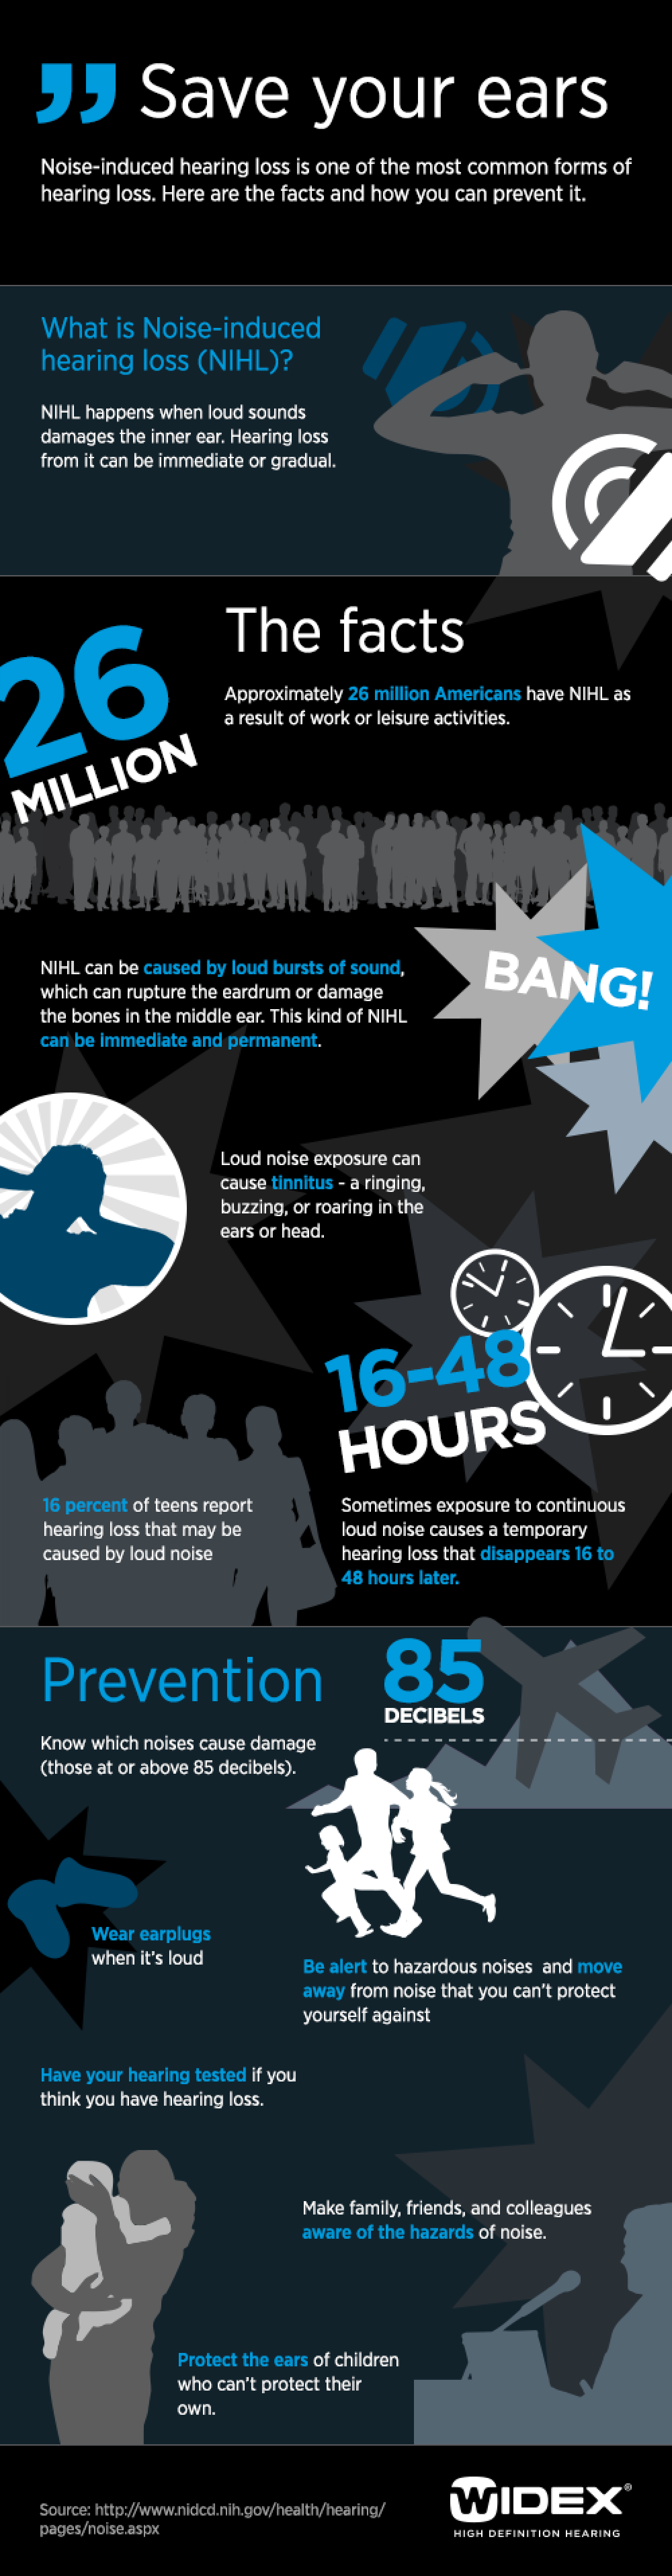 Noise-induced hearing loss: The Facts Infographic